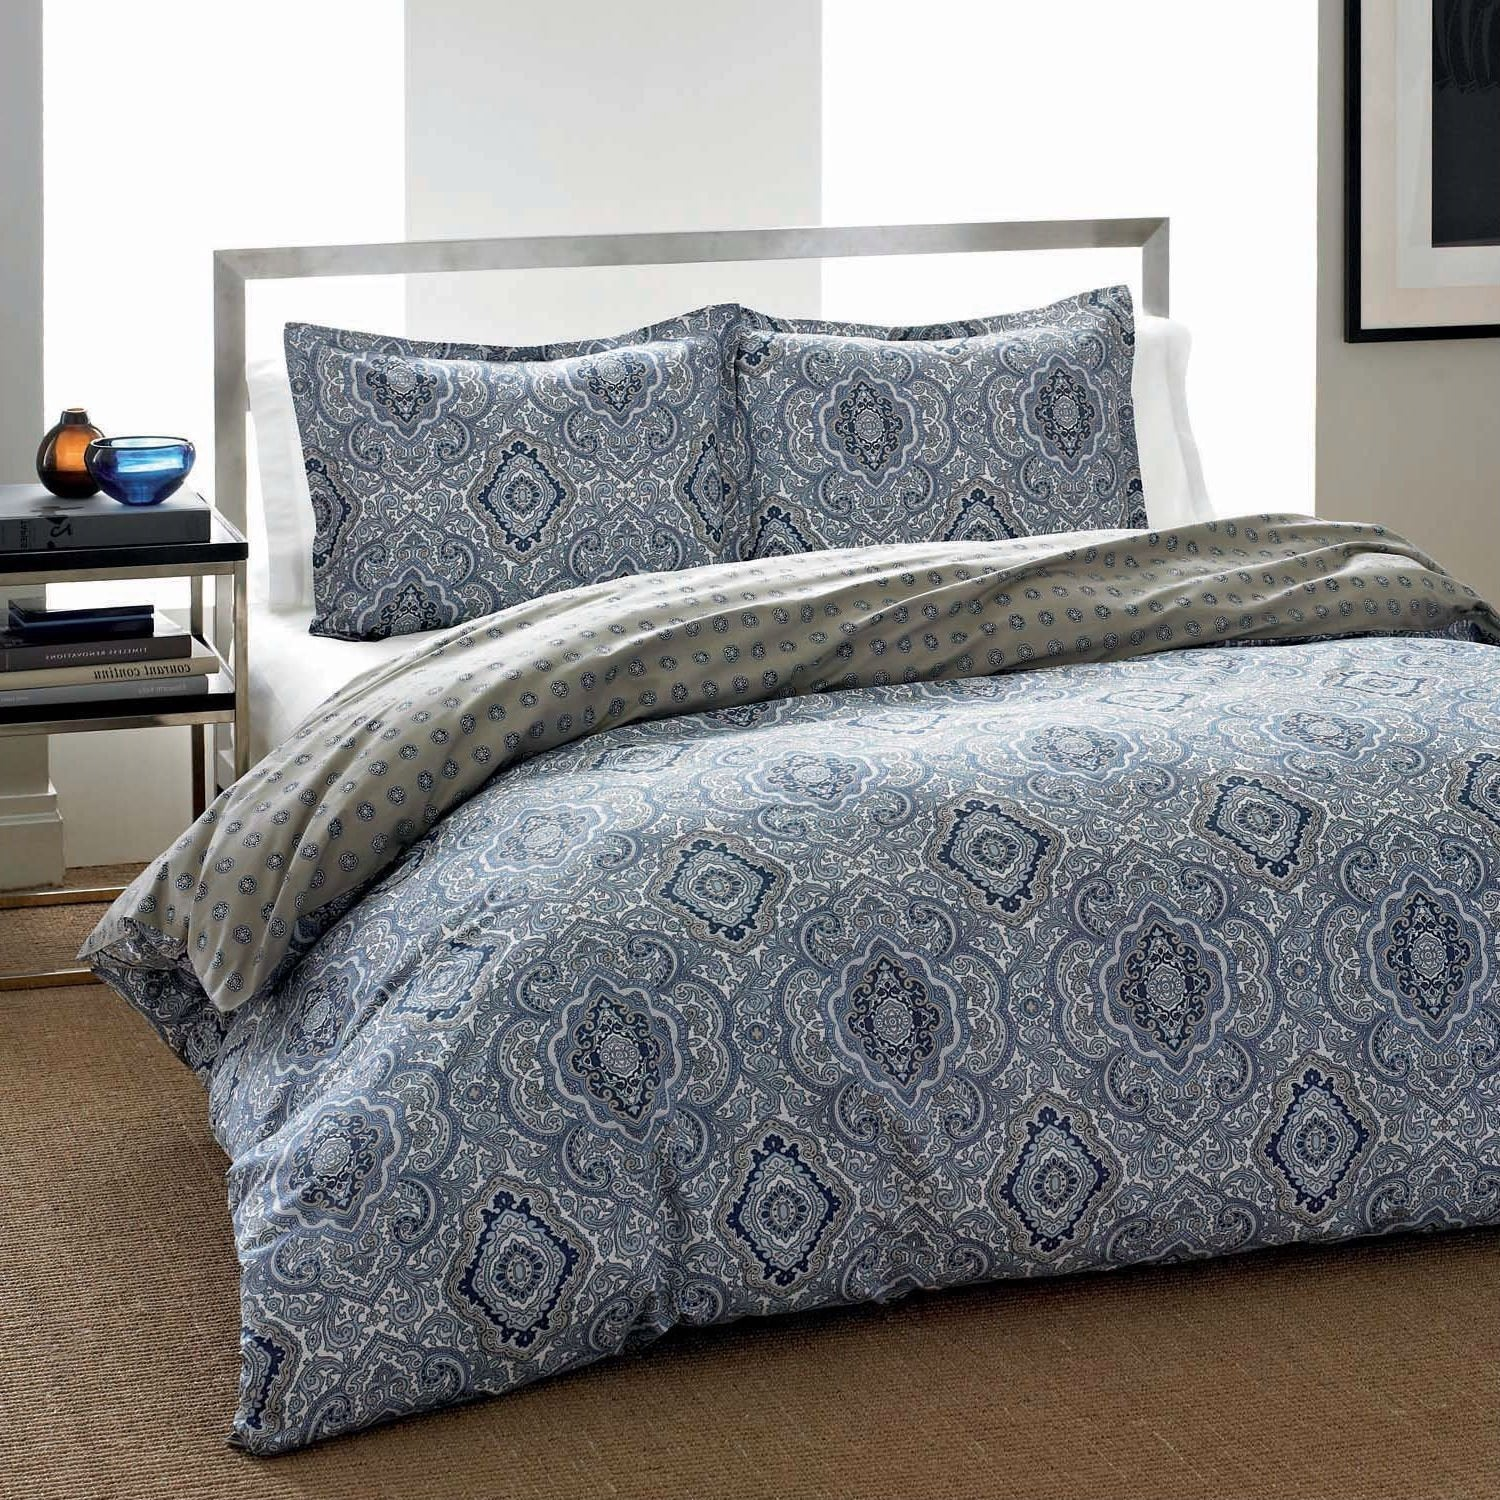 King 3-Piece Cotton Comforter Set with Blue Grey Damask Pattern